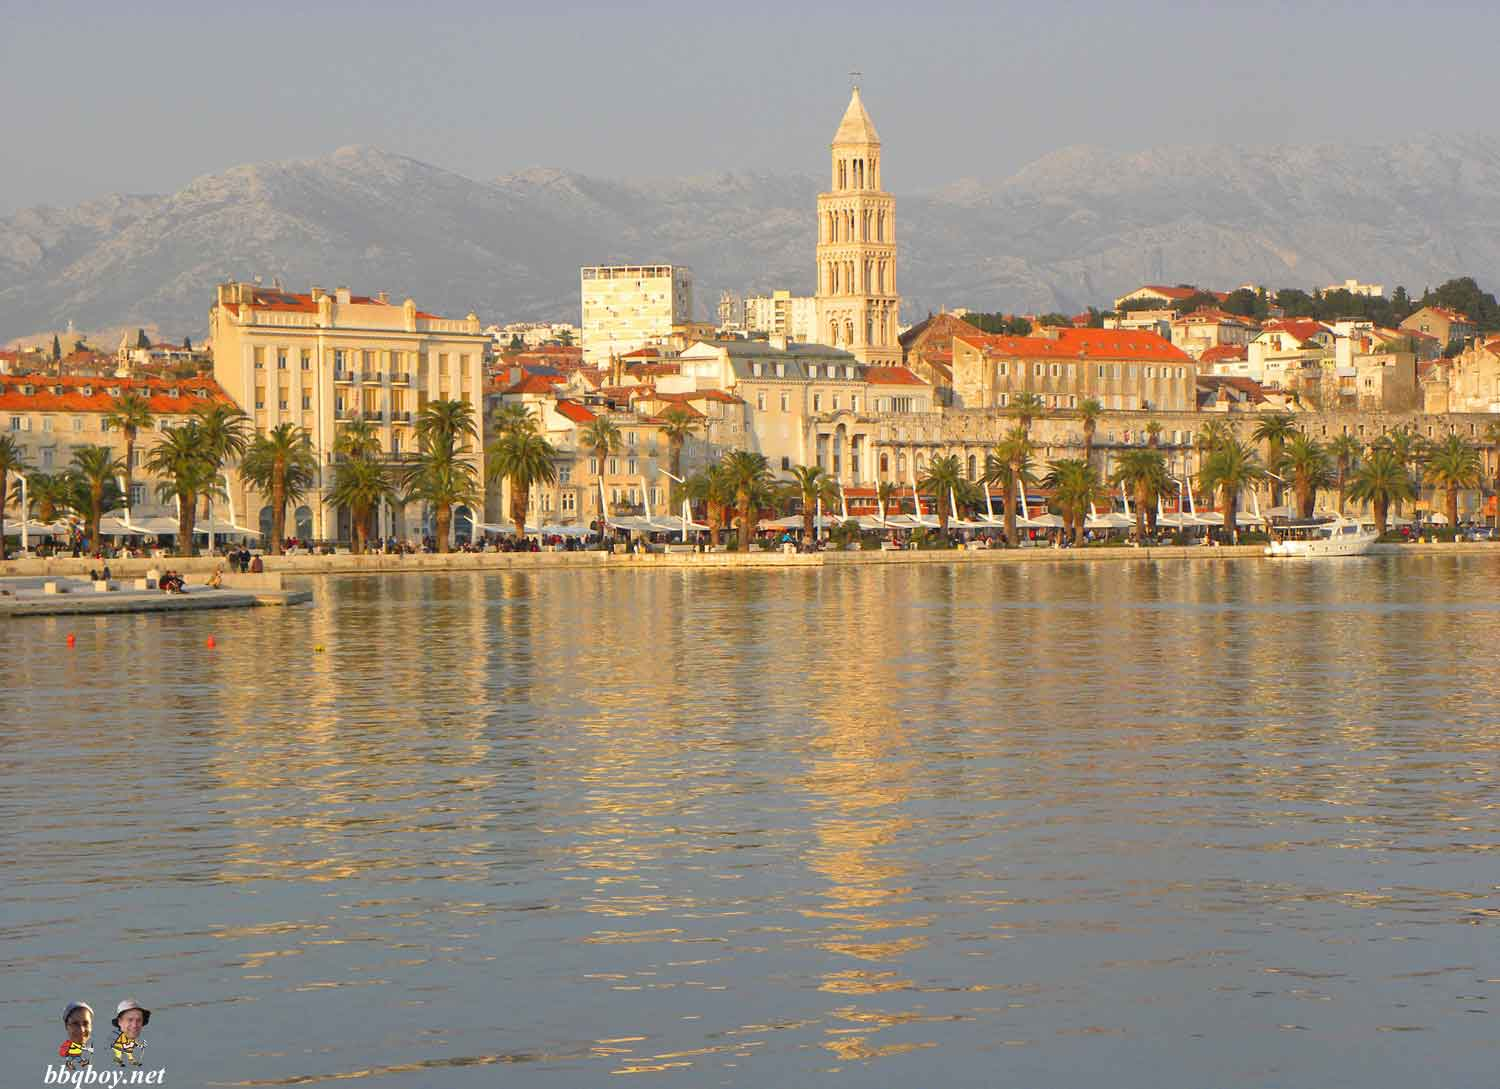 Split, Croatia. One of the places they have called home for a while.